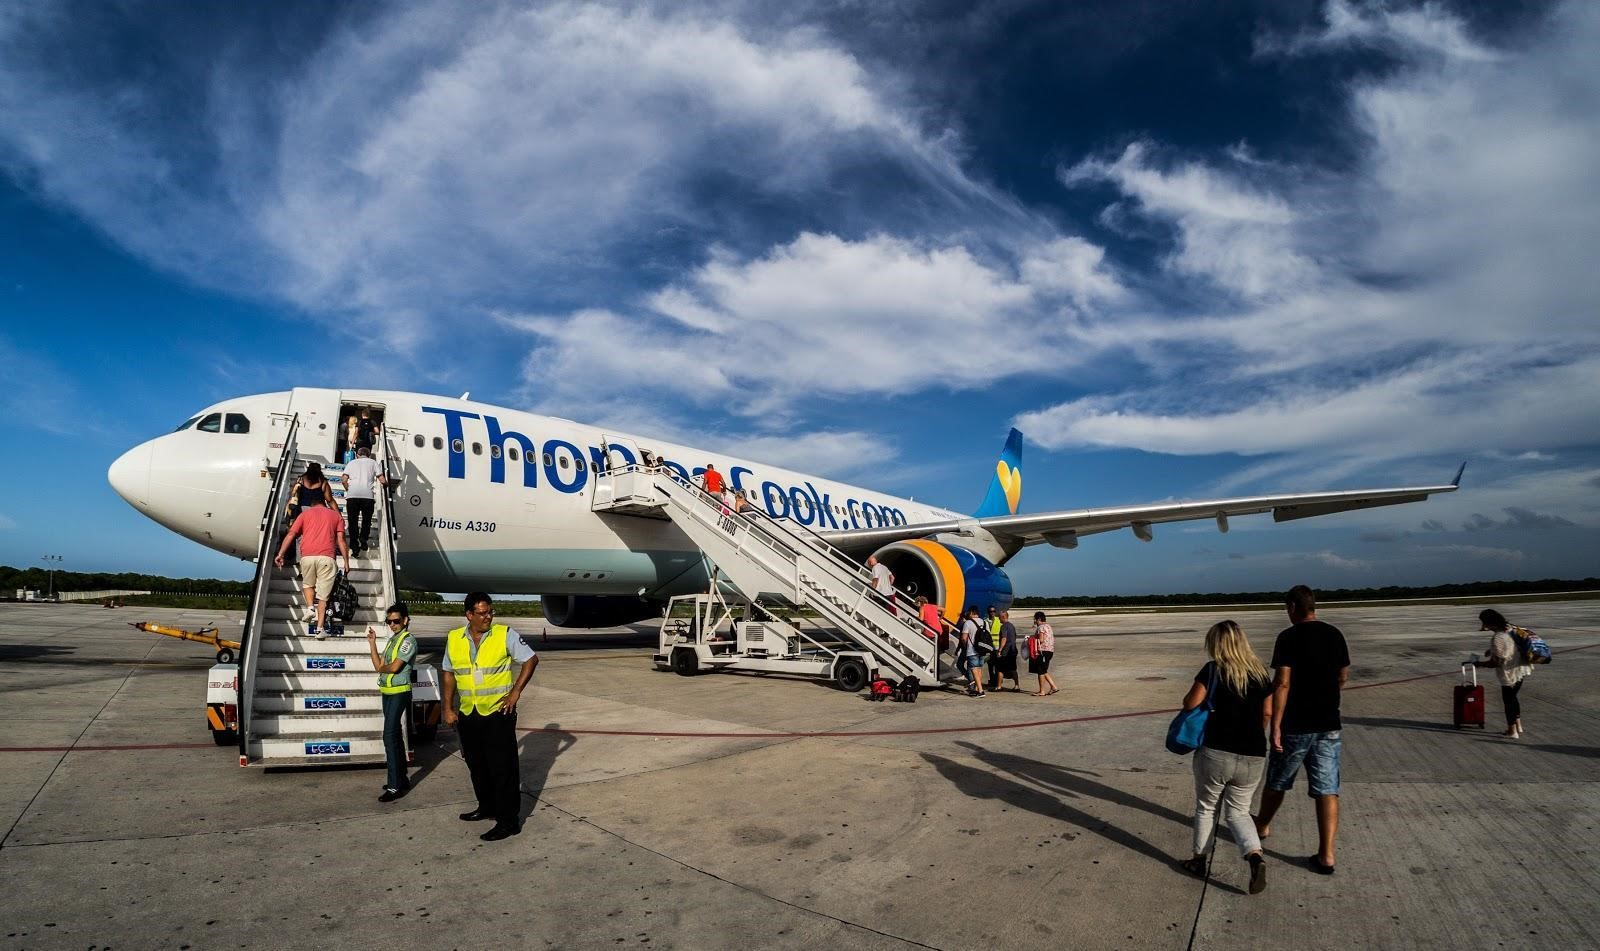 People board a Thomas Cook aeroplane from the tarmac at Jardines del Rey Airport, Cayo Coco, Cuba. IMG: CWhatPhotos